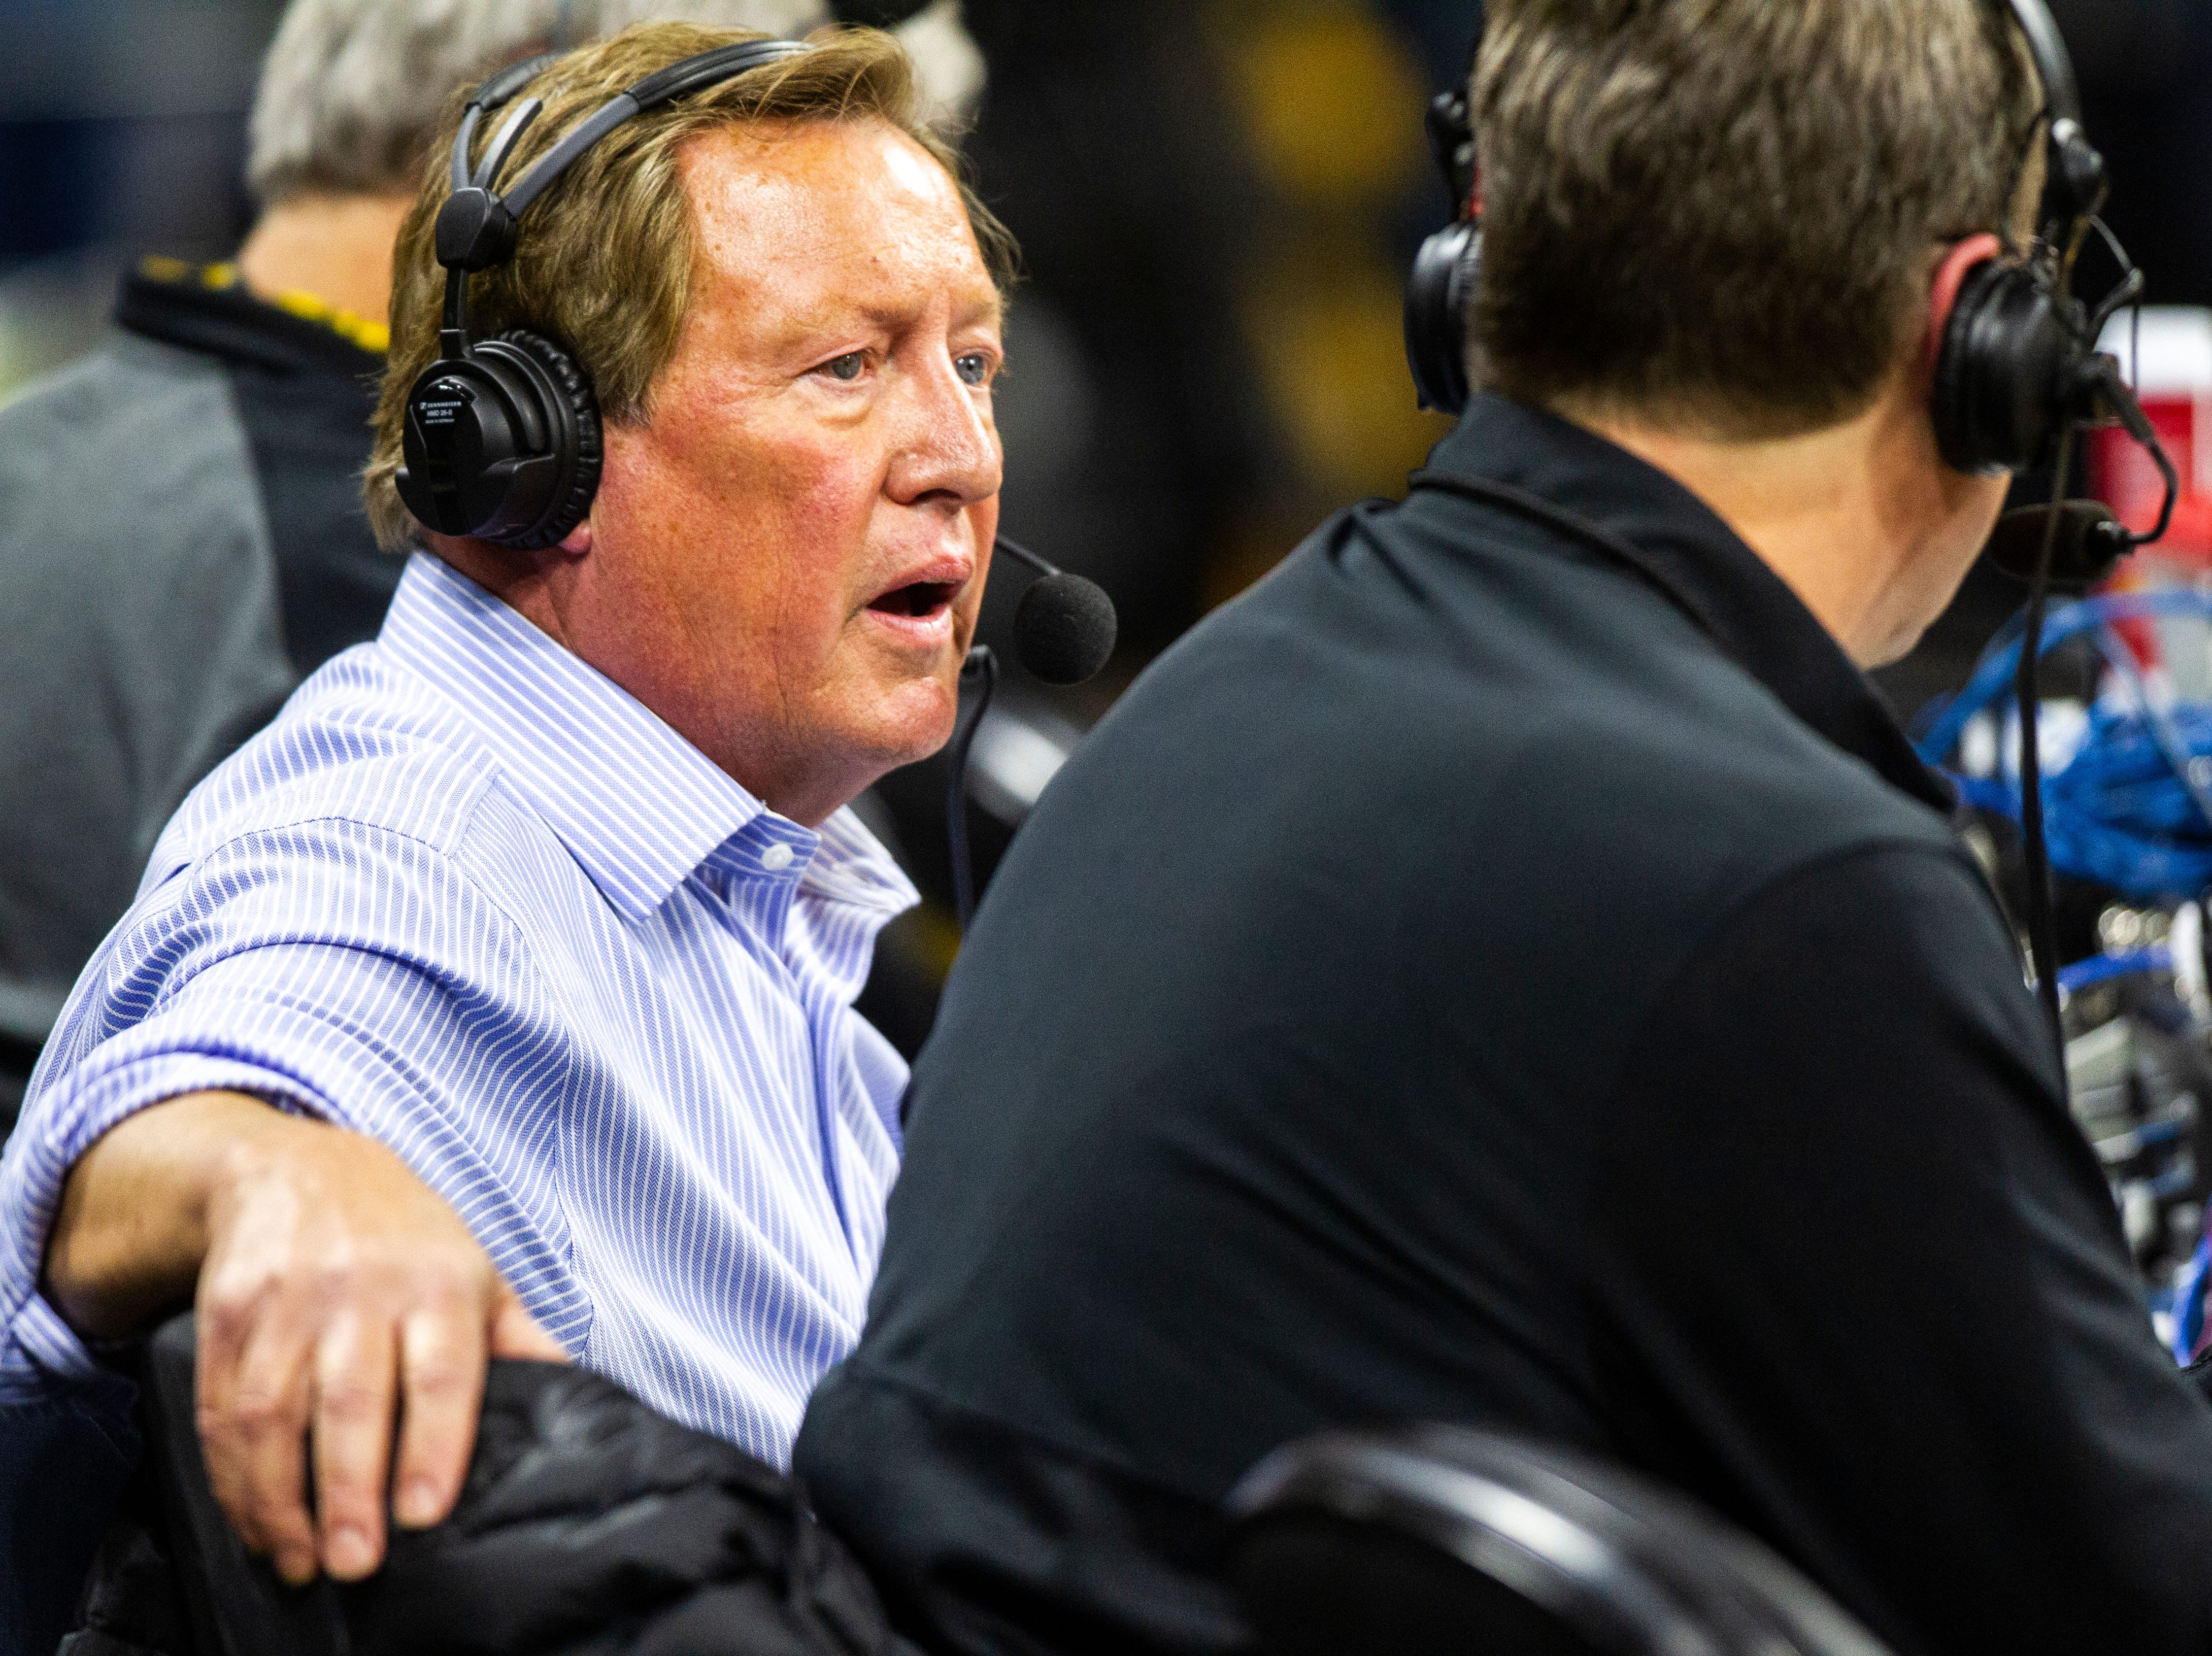 Jim Albracht, left, commentates alongside Bobby Hansen before an Iowa men's basketball game against Wisconsin on Friday, Nov. 30, 2018, at Carver-Hawkeye Arena in Iowa City.